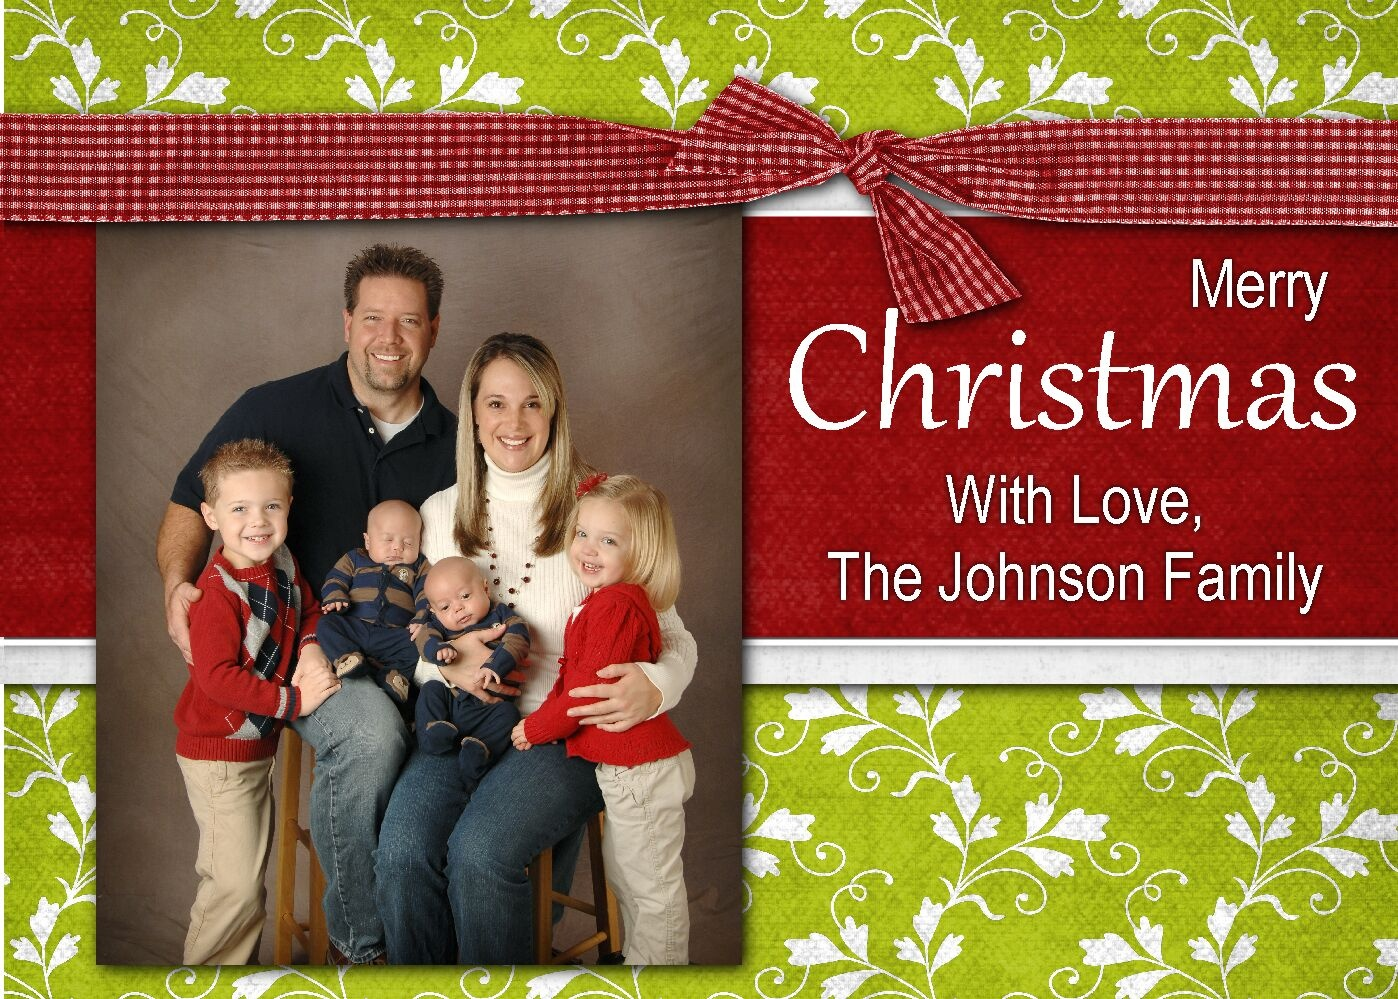 Free Christmas Cards To Make - Demir.iso-Consulting.co - Free Online Christmas Photo Card Maker Printable